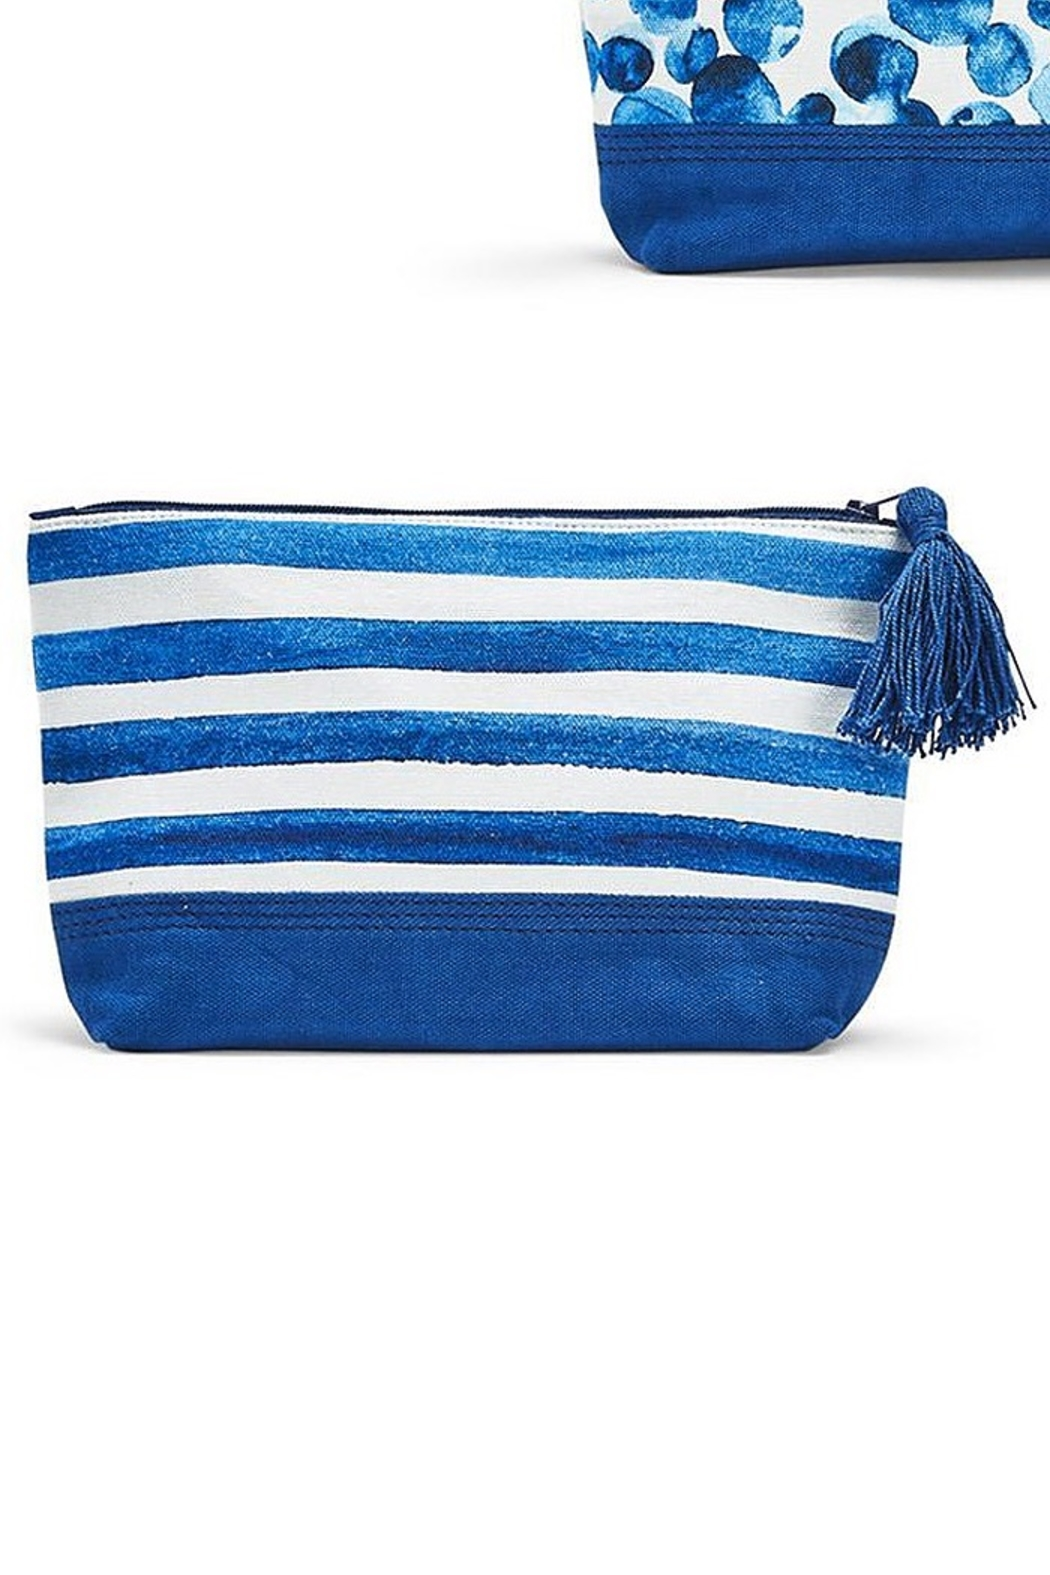 Two's Company Indigo Tech Bag - Front Cropped Image